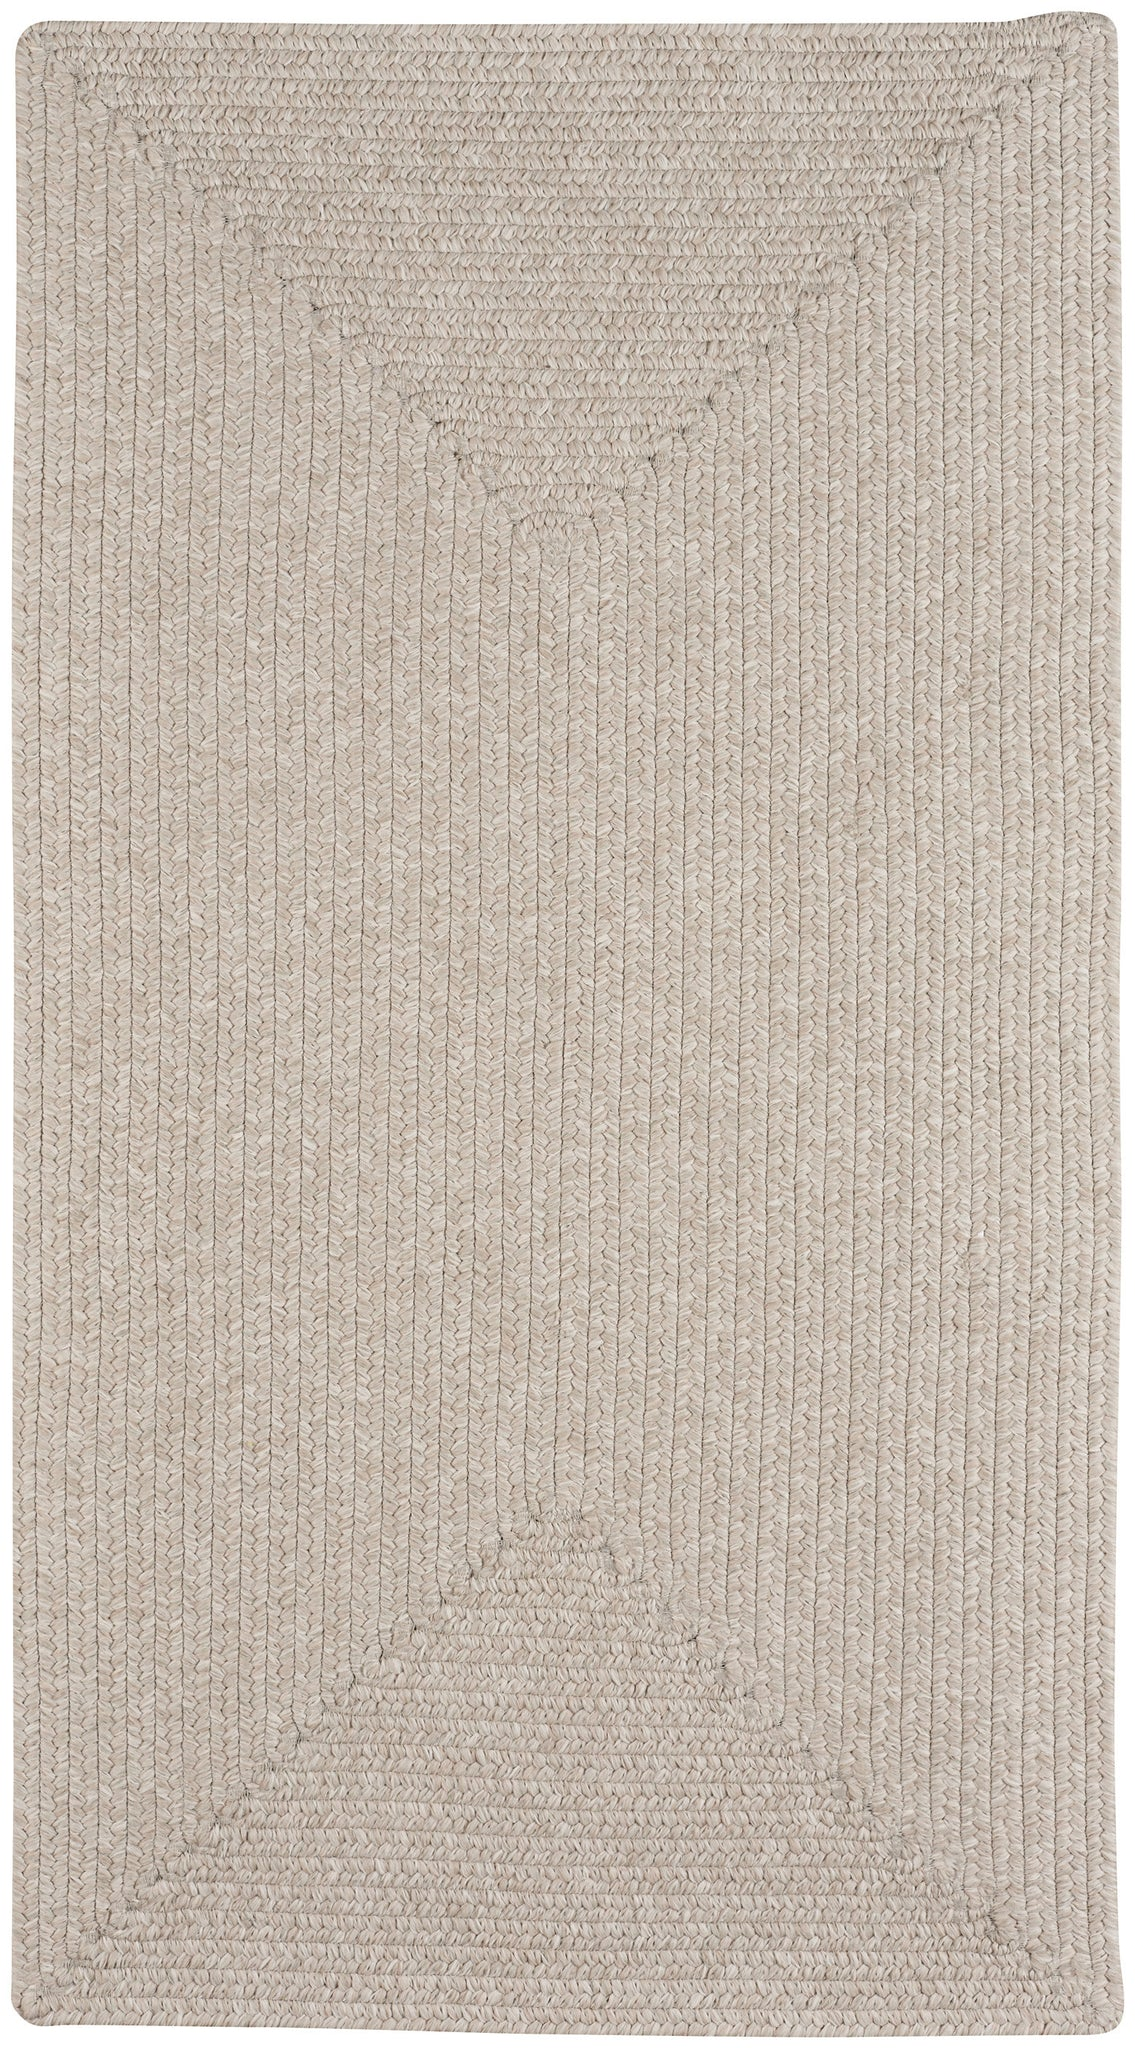 Capel Candor 0865 Natural 650 Area Rug main image